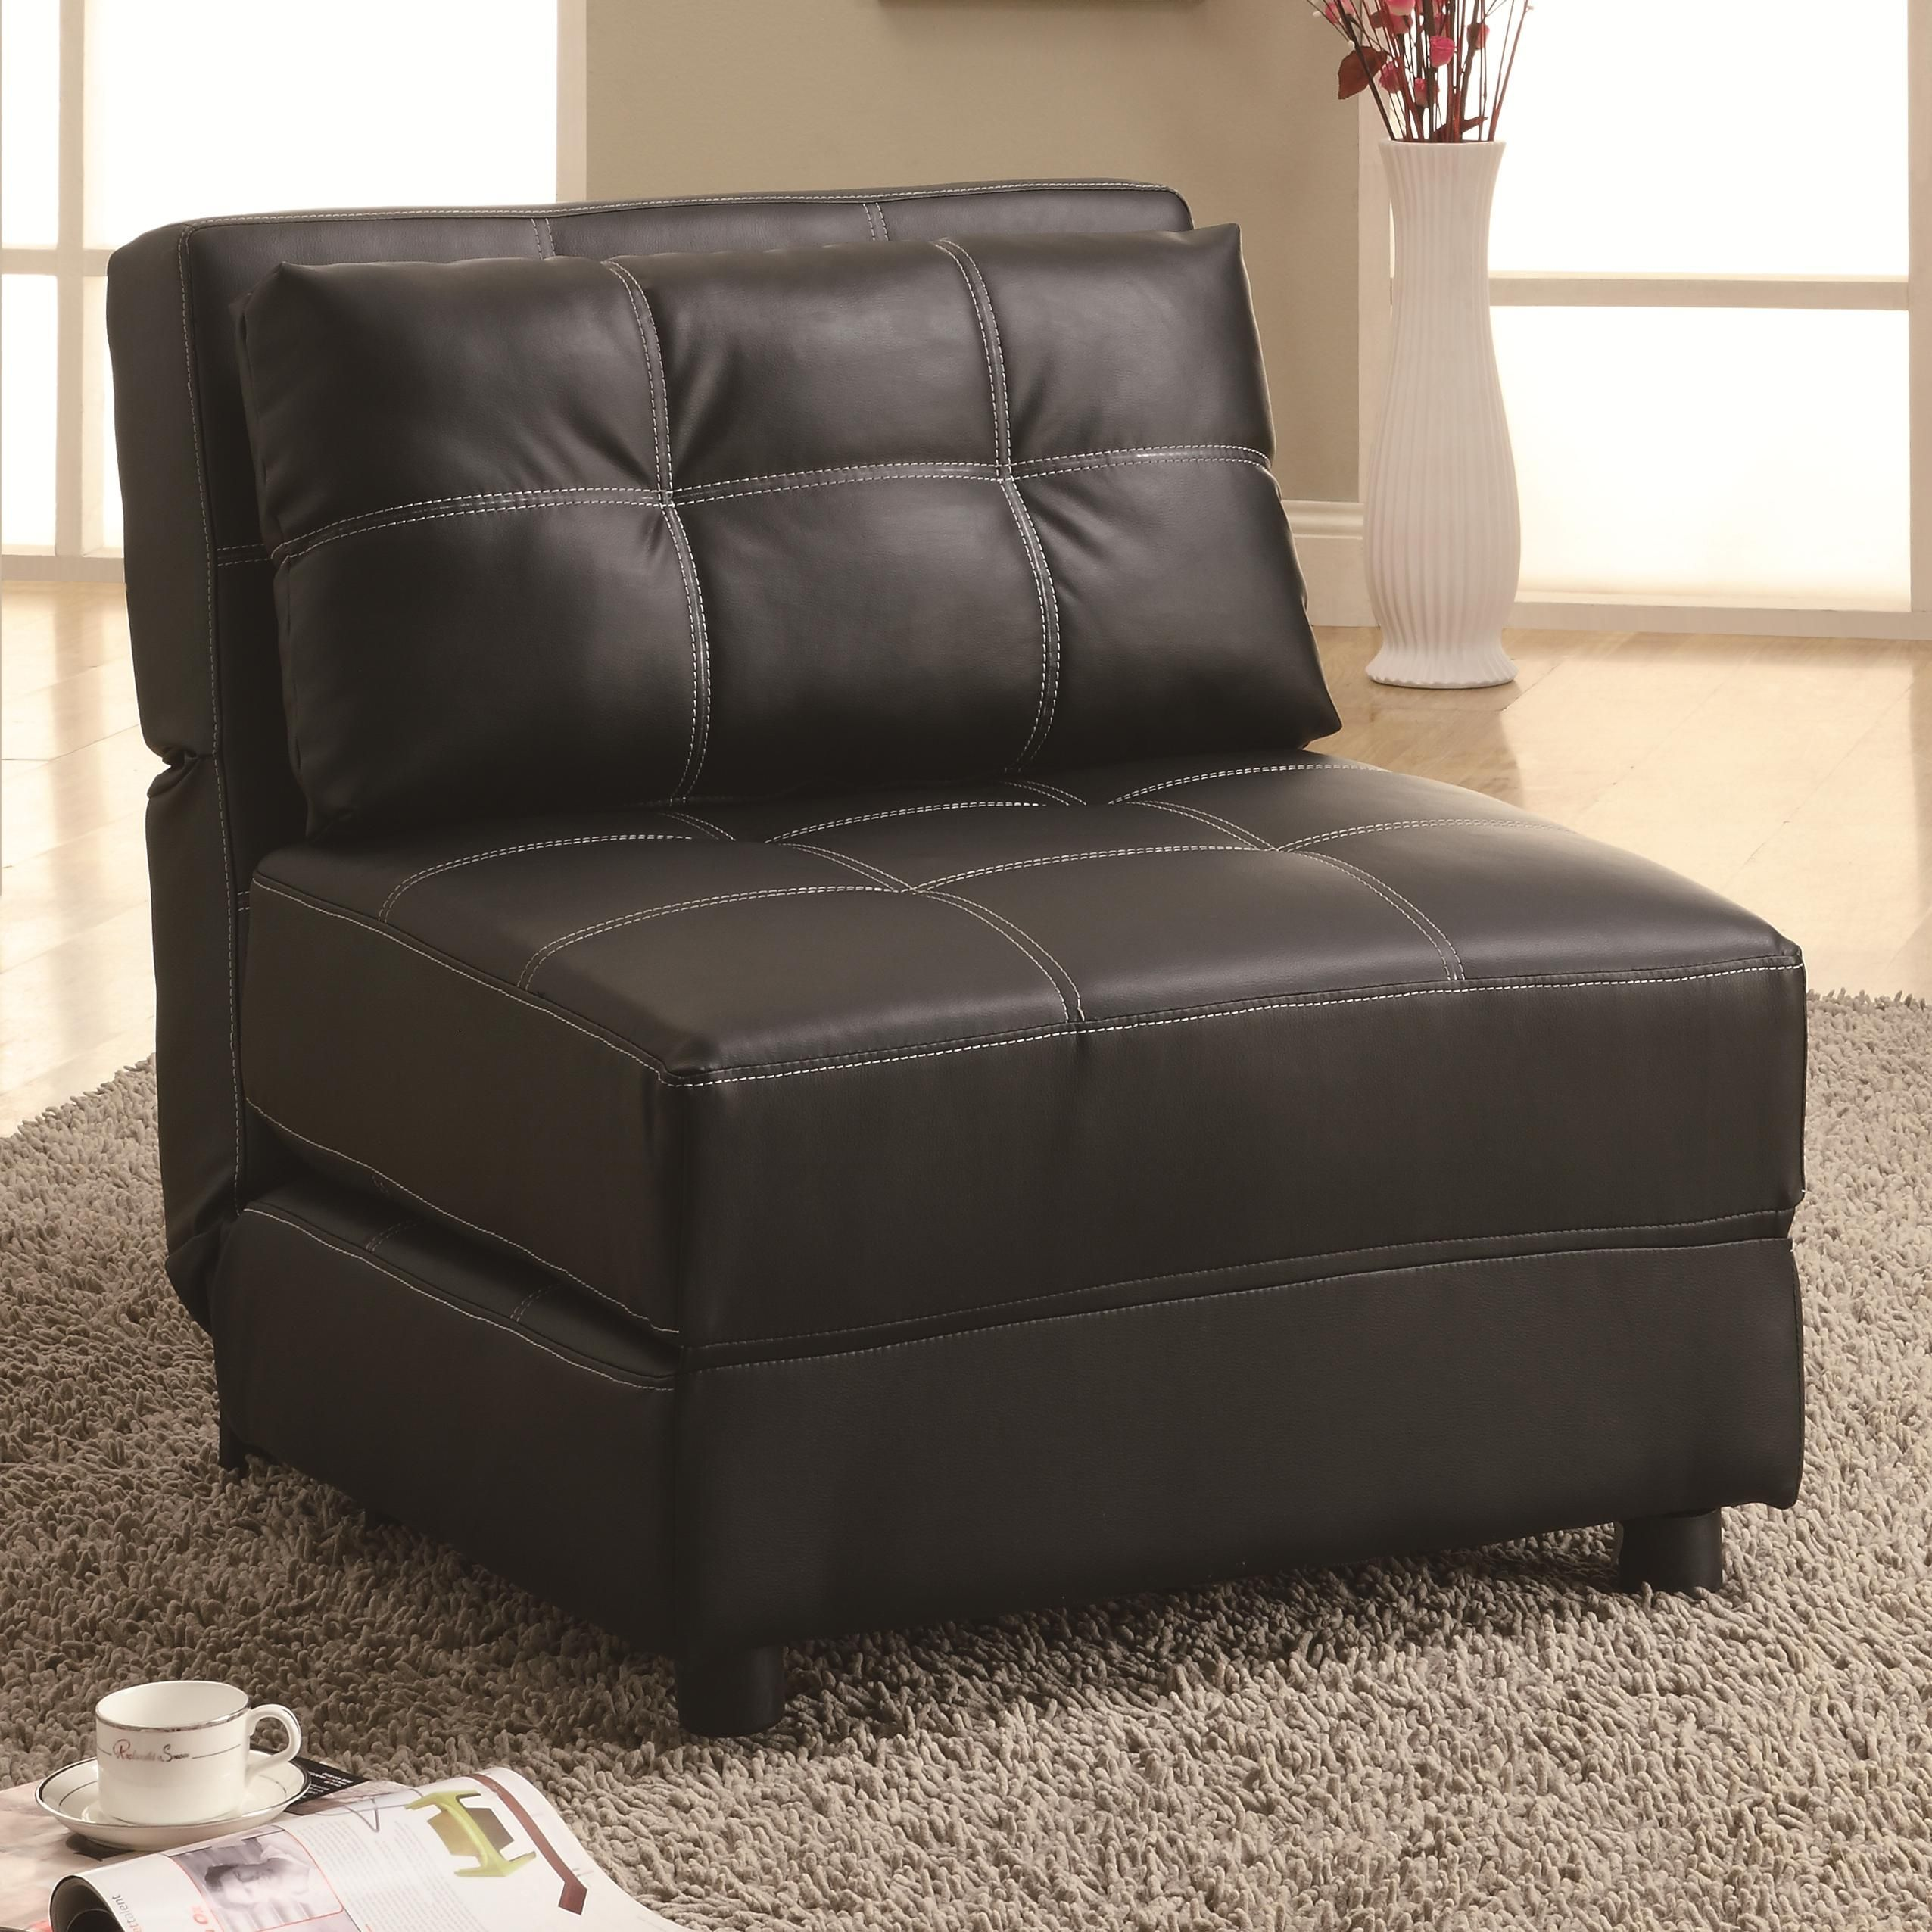 Single Armless Sofa Chair Axis Reviews Accent Seating Contemporary Lounge Bed